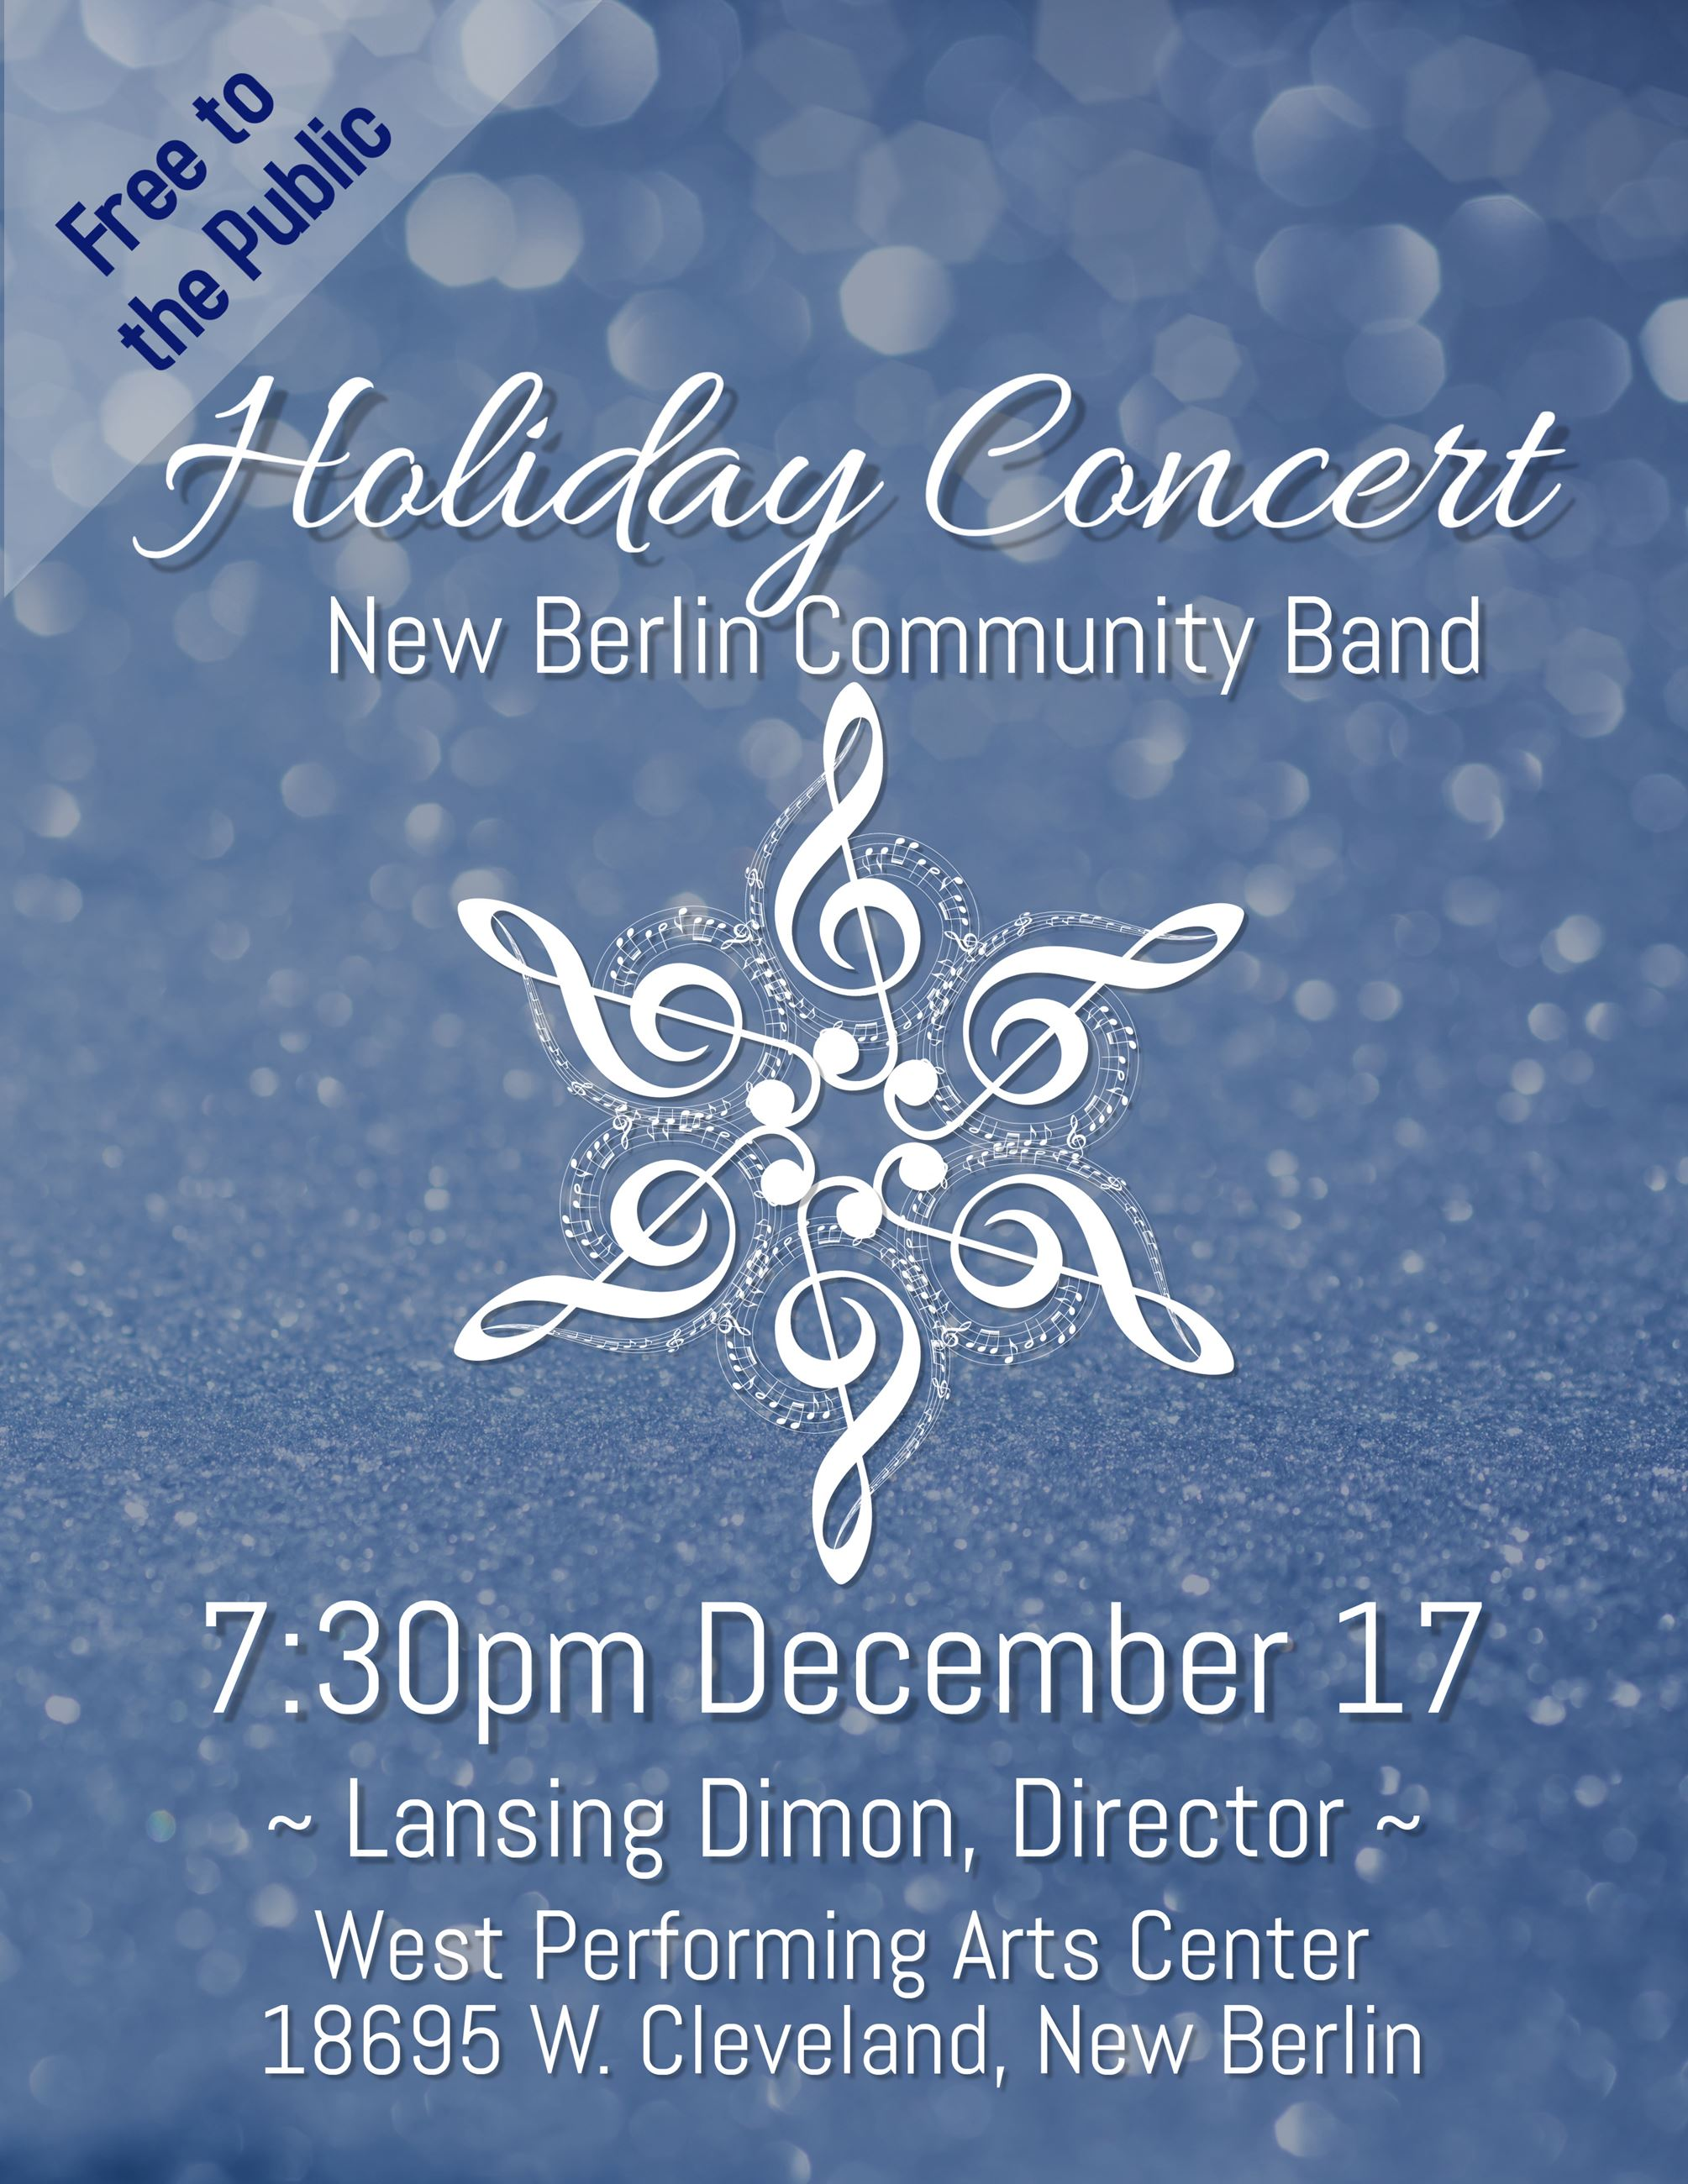 New Berlin Community Band Holiday Concert Poster 2018